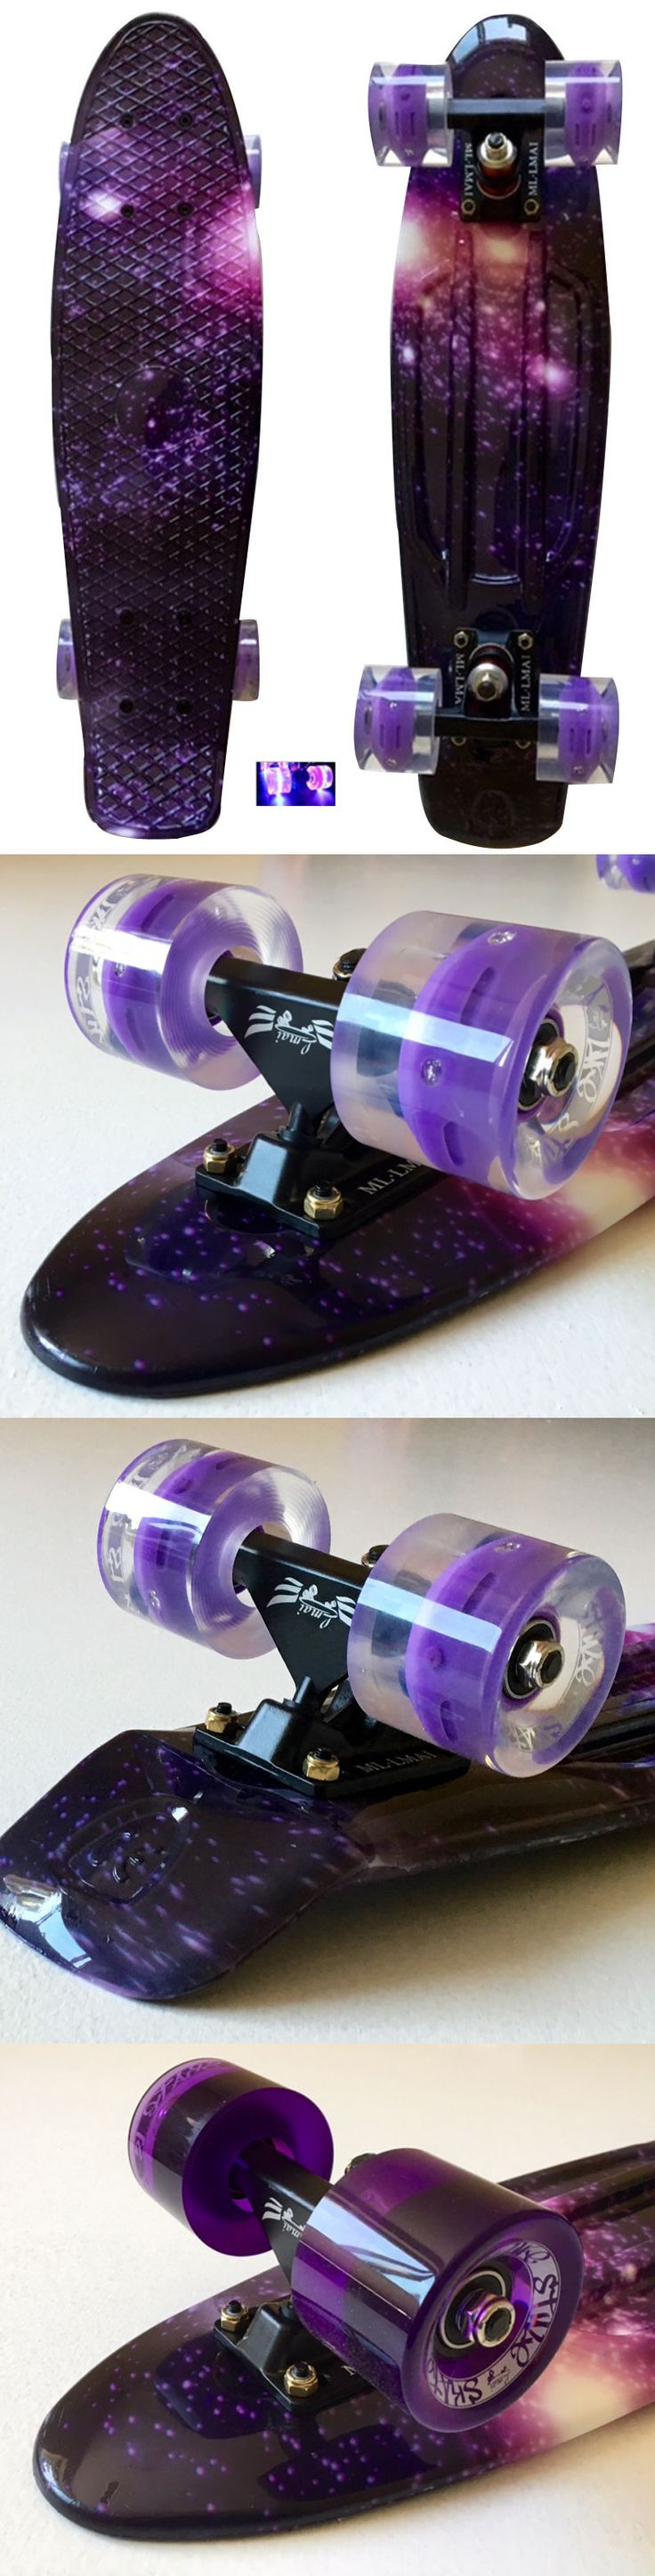 Skateboards-Complete 16264: Lmai 22 27 Cruiser Skateboard Graphic Penny Style Galaxy Purple Starry Board -> BUY IT NOW ONLY: $59.99 on eBay!